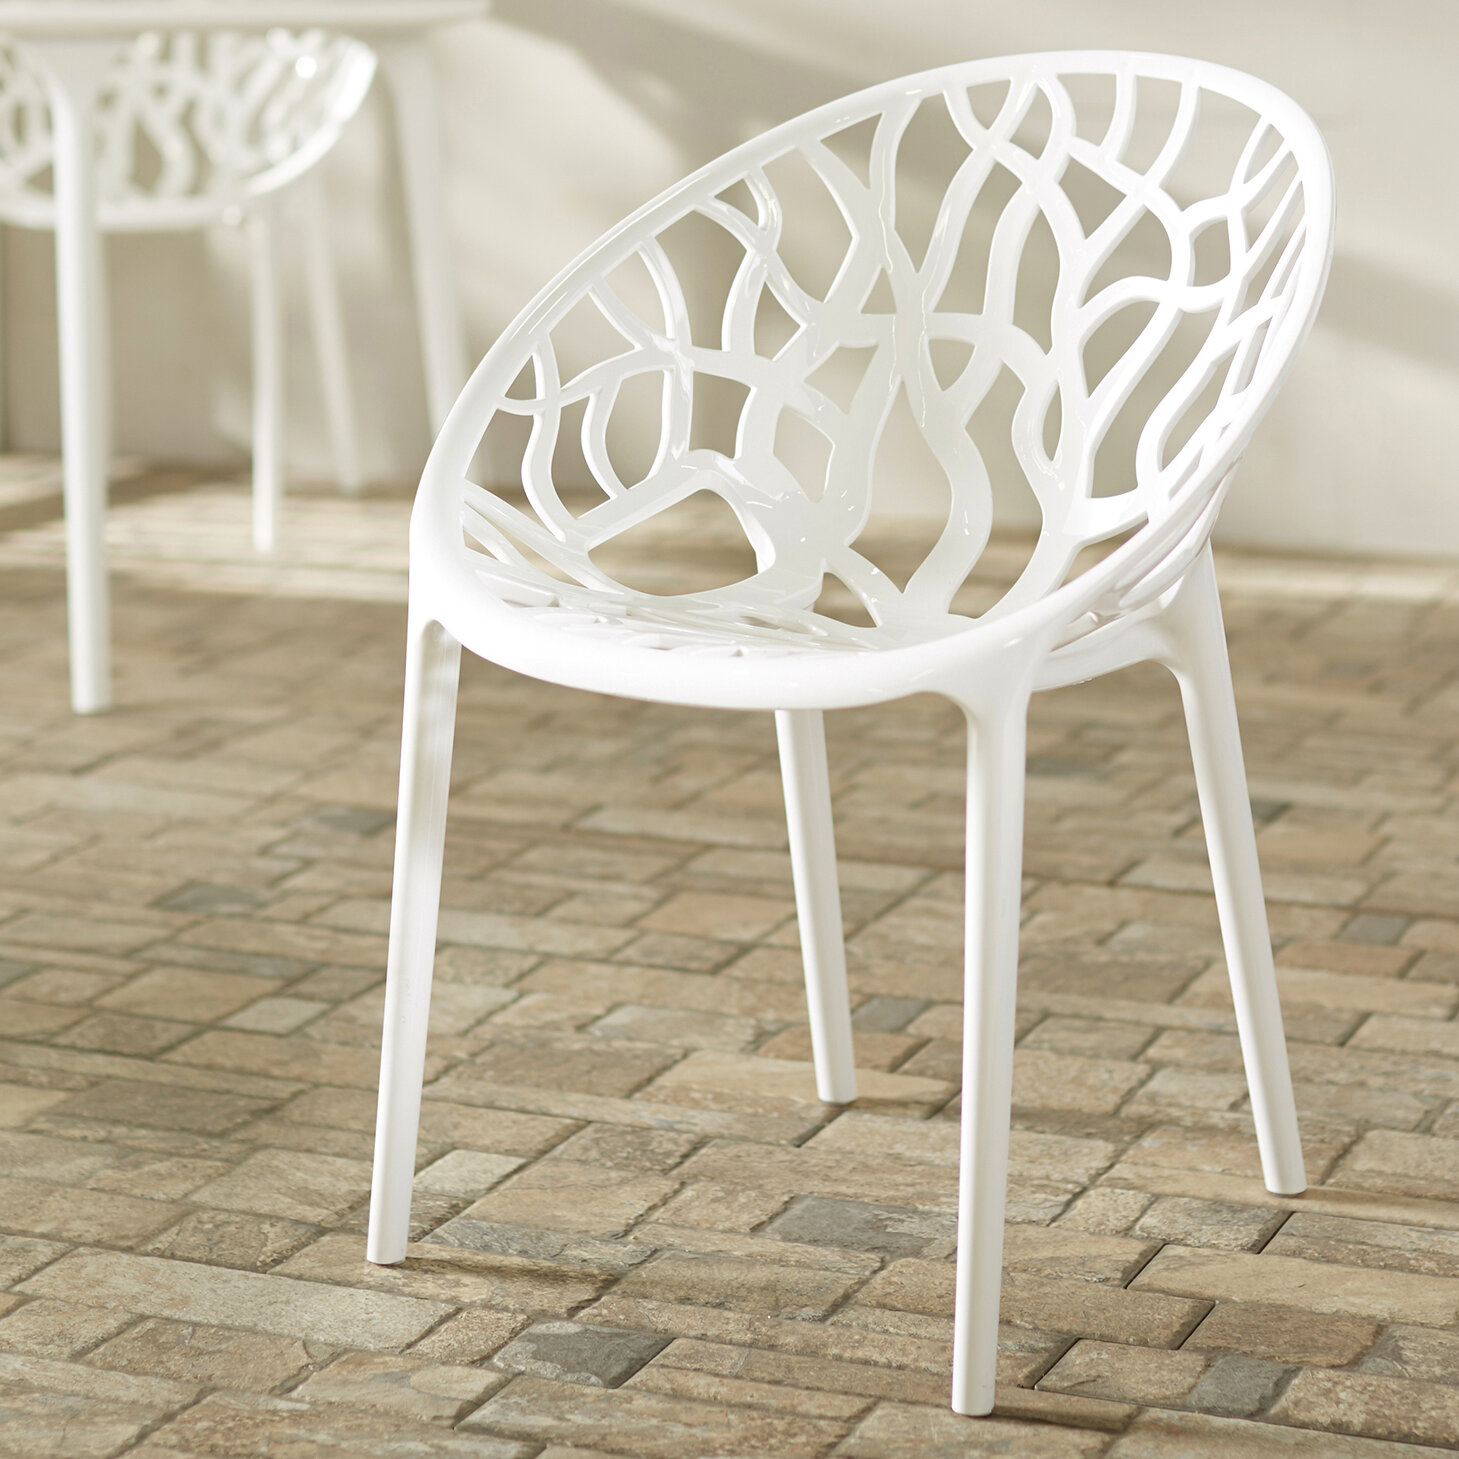 Super Metrocles Stacking Patio Dining Chair Download Free Architecture Designs Rallybritishbridgeorg